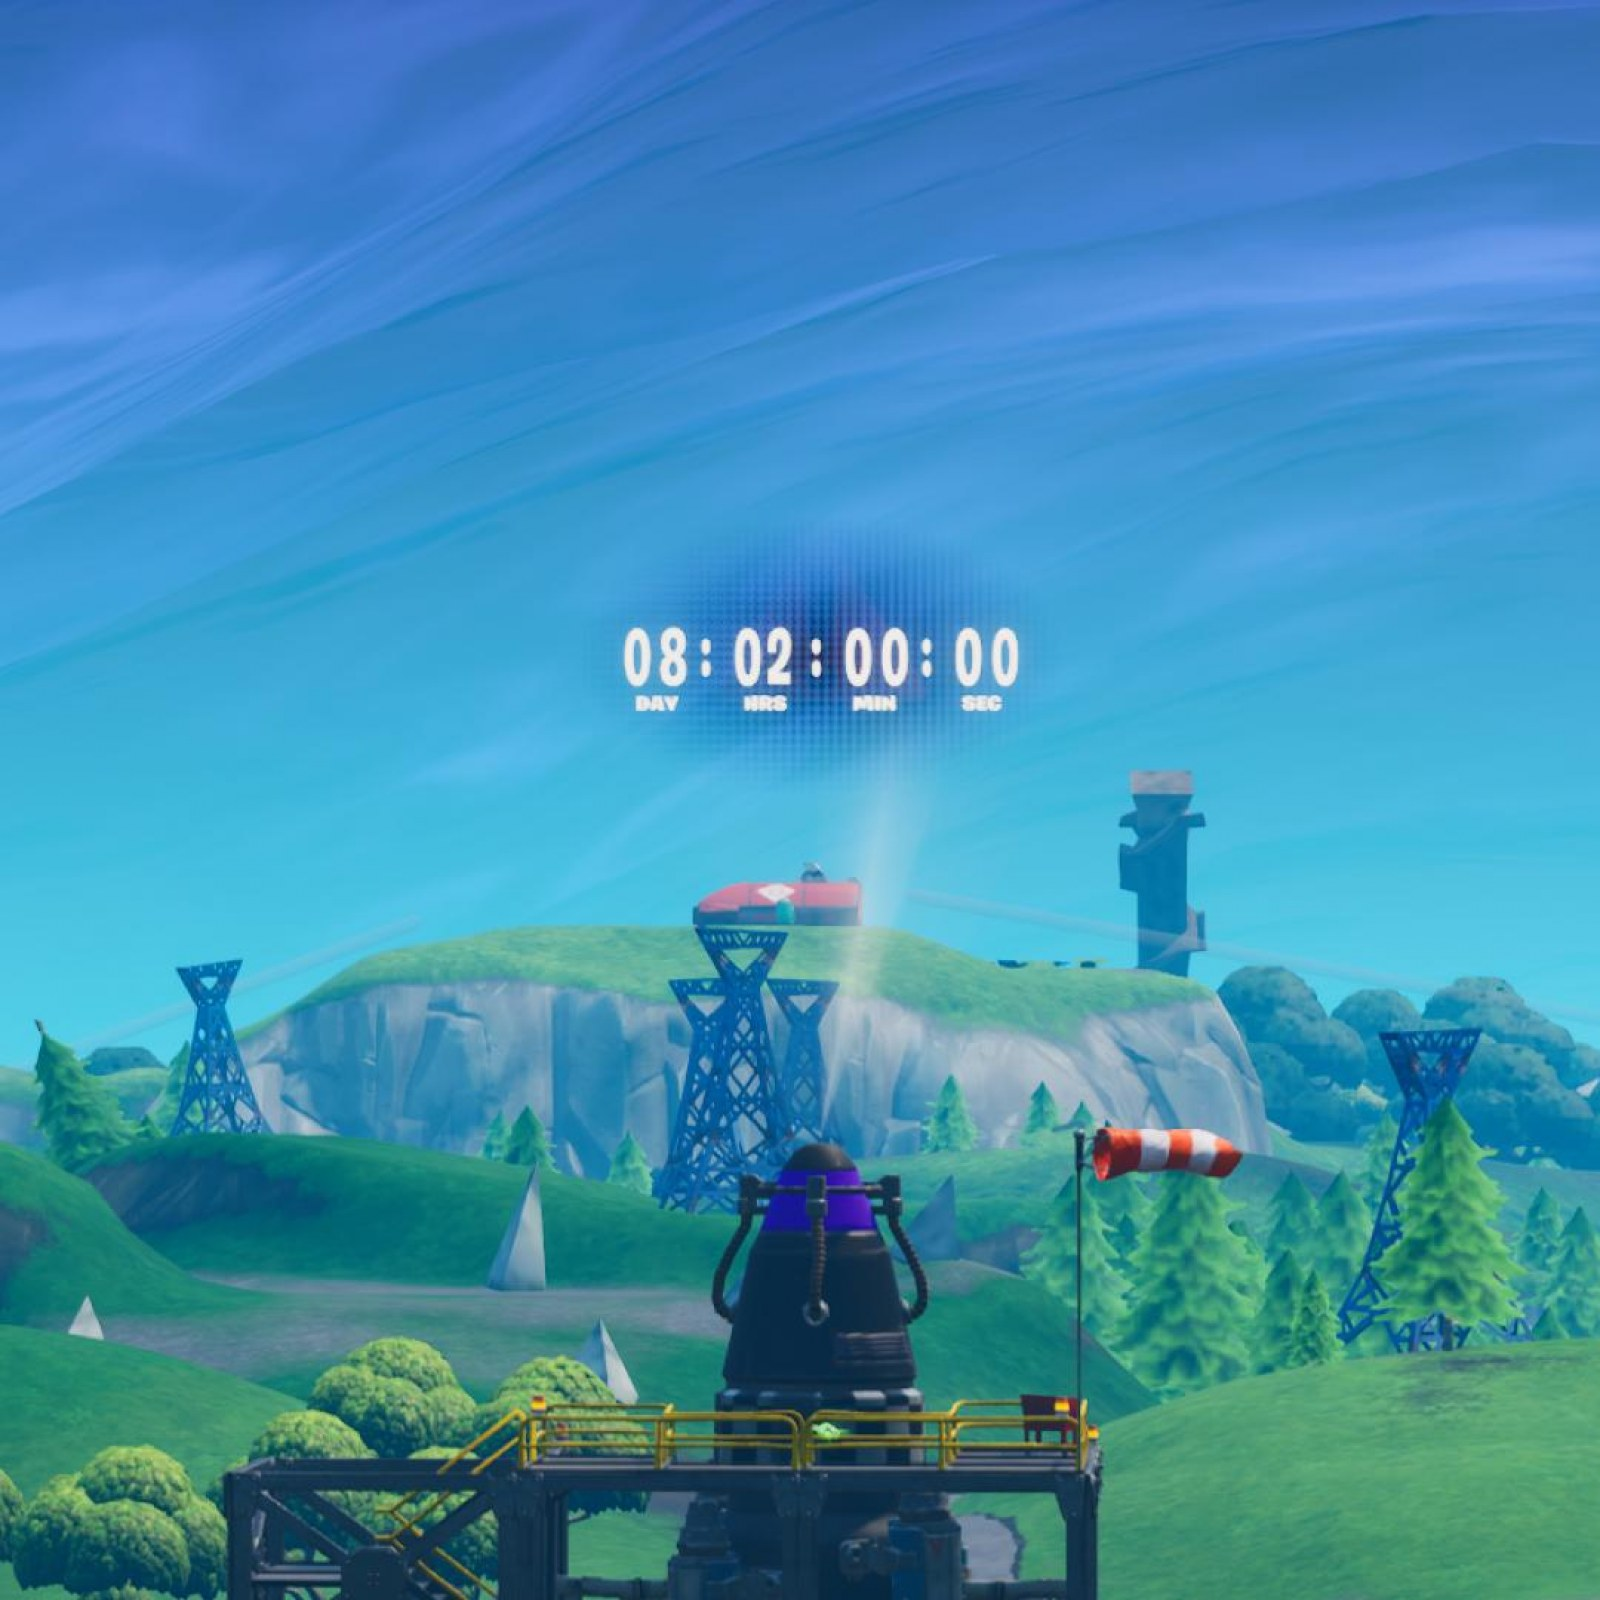 Fortnite' Season 10 the End Live Event Countdown - When Does